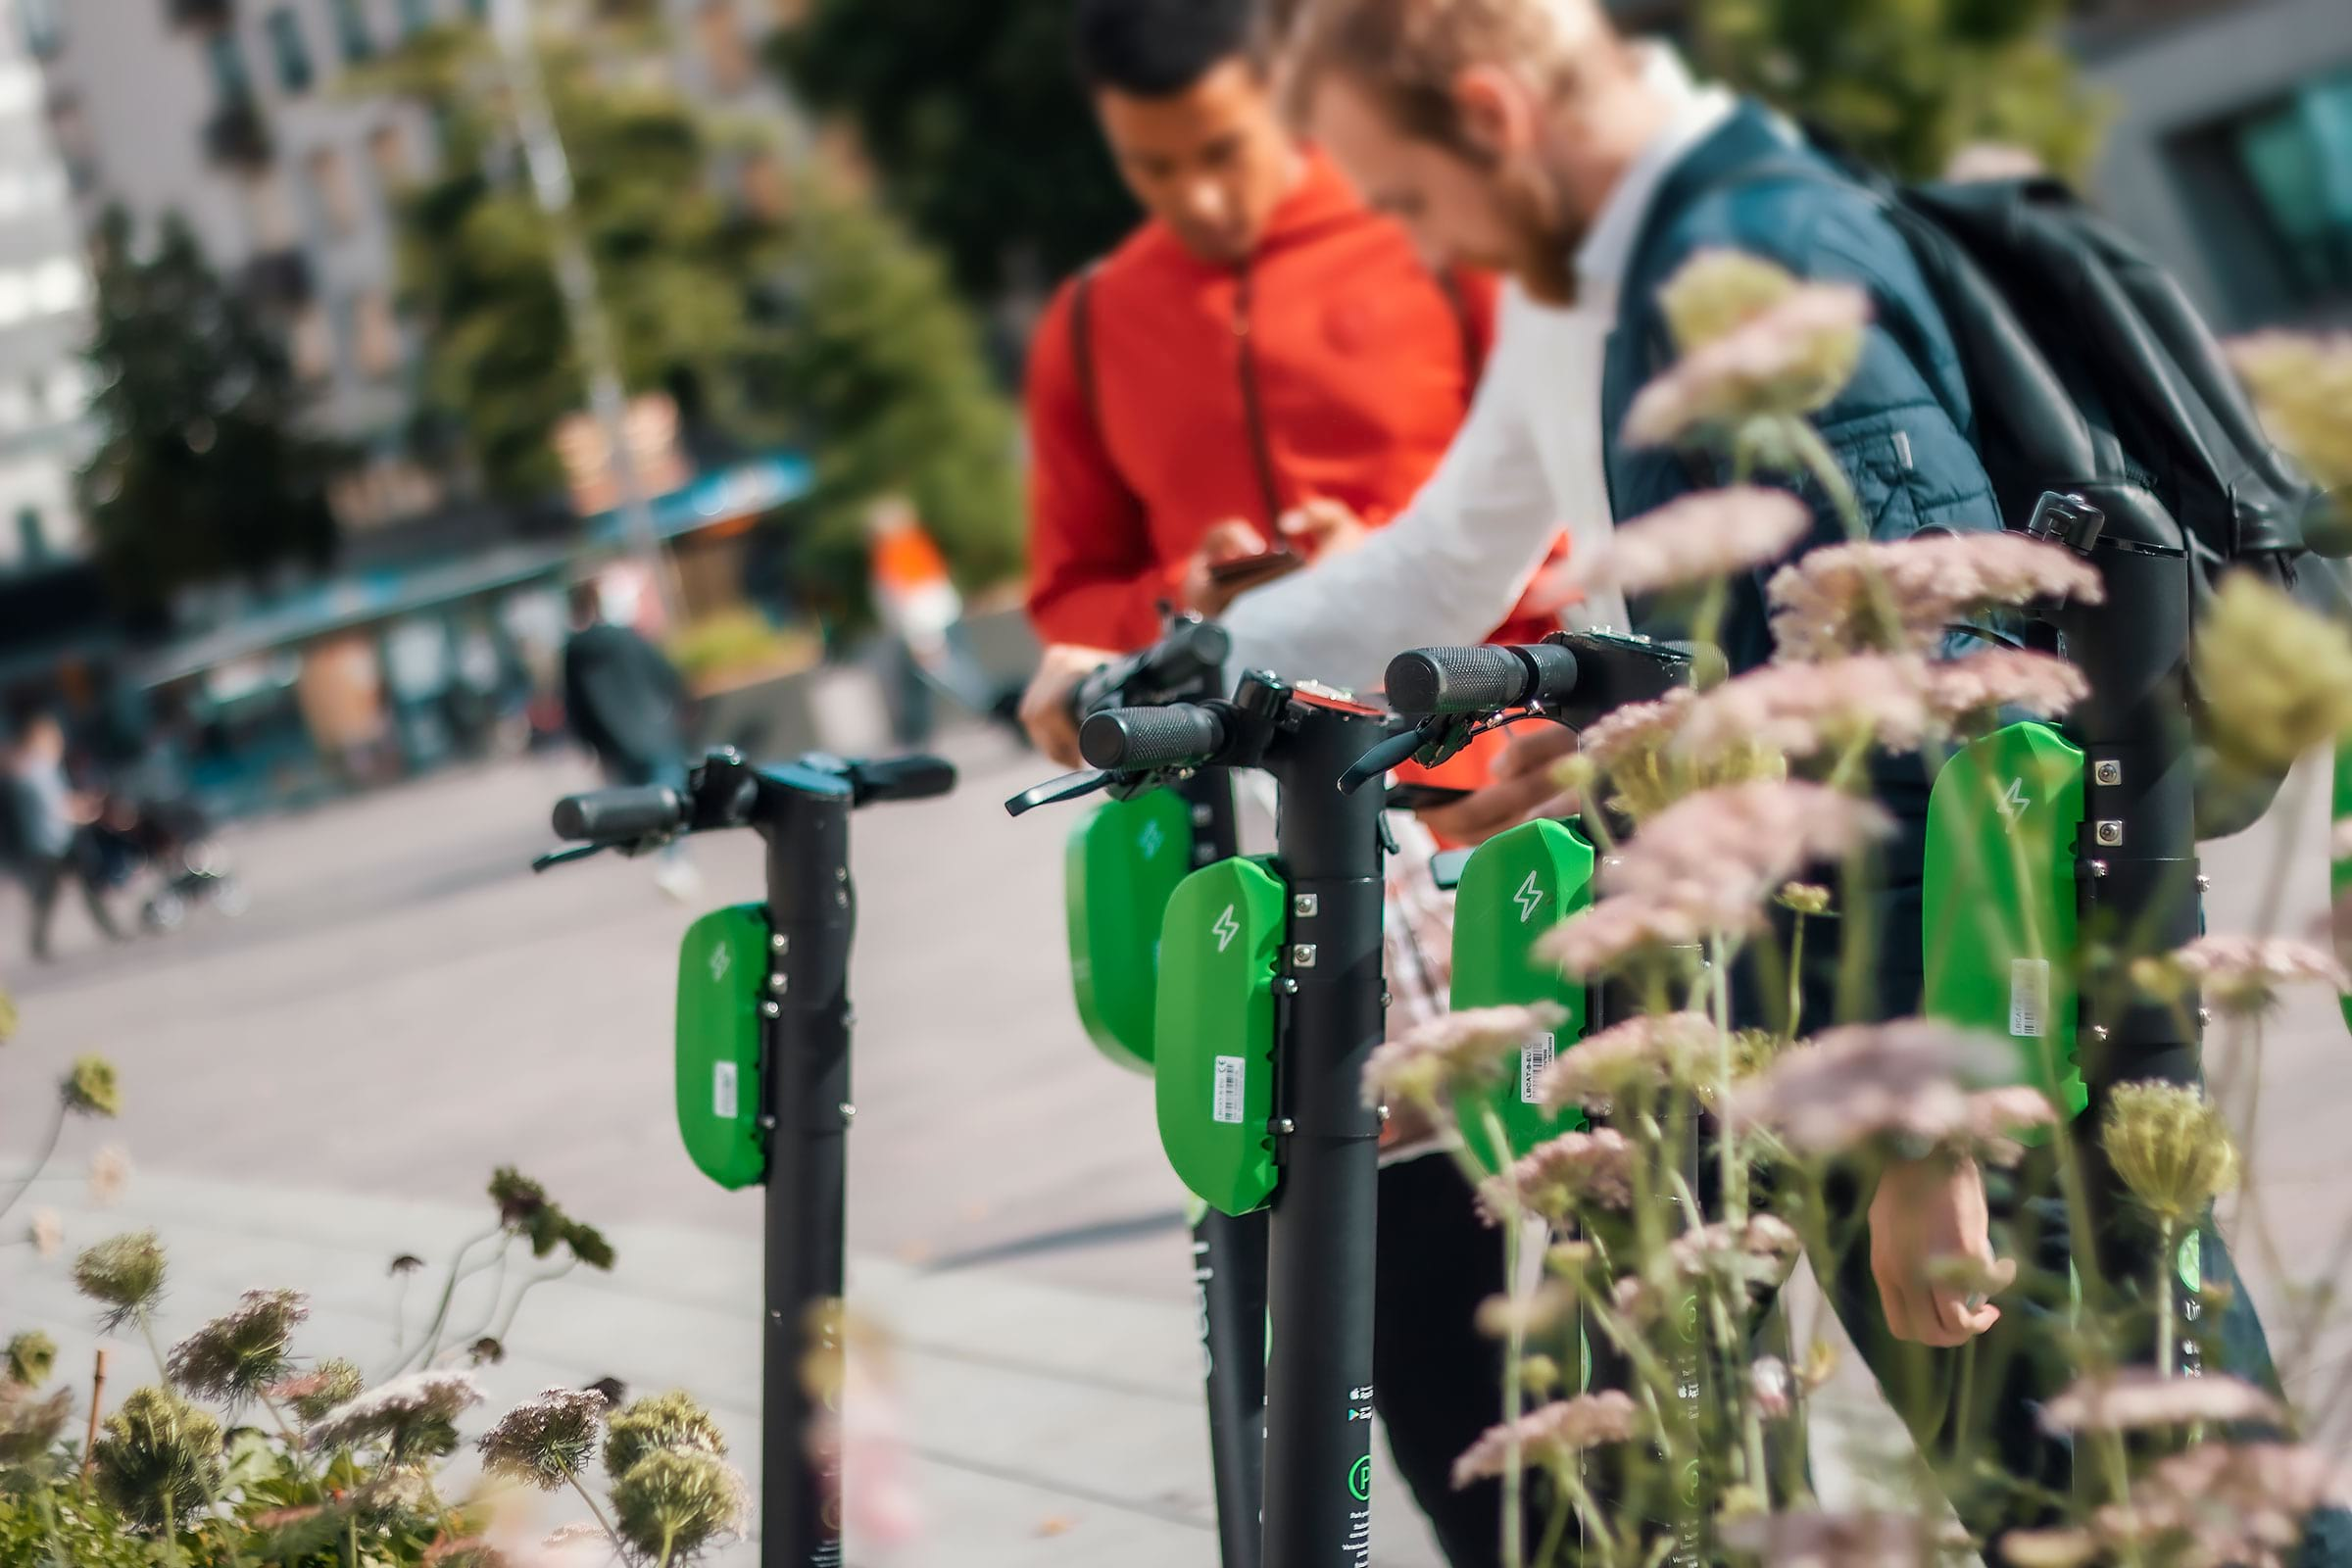 Getting around in Malmö - how to hire an electric scooter